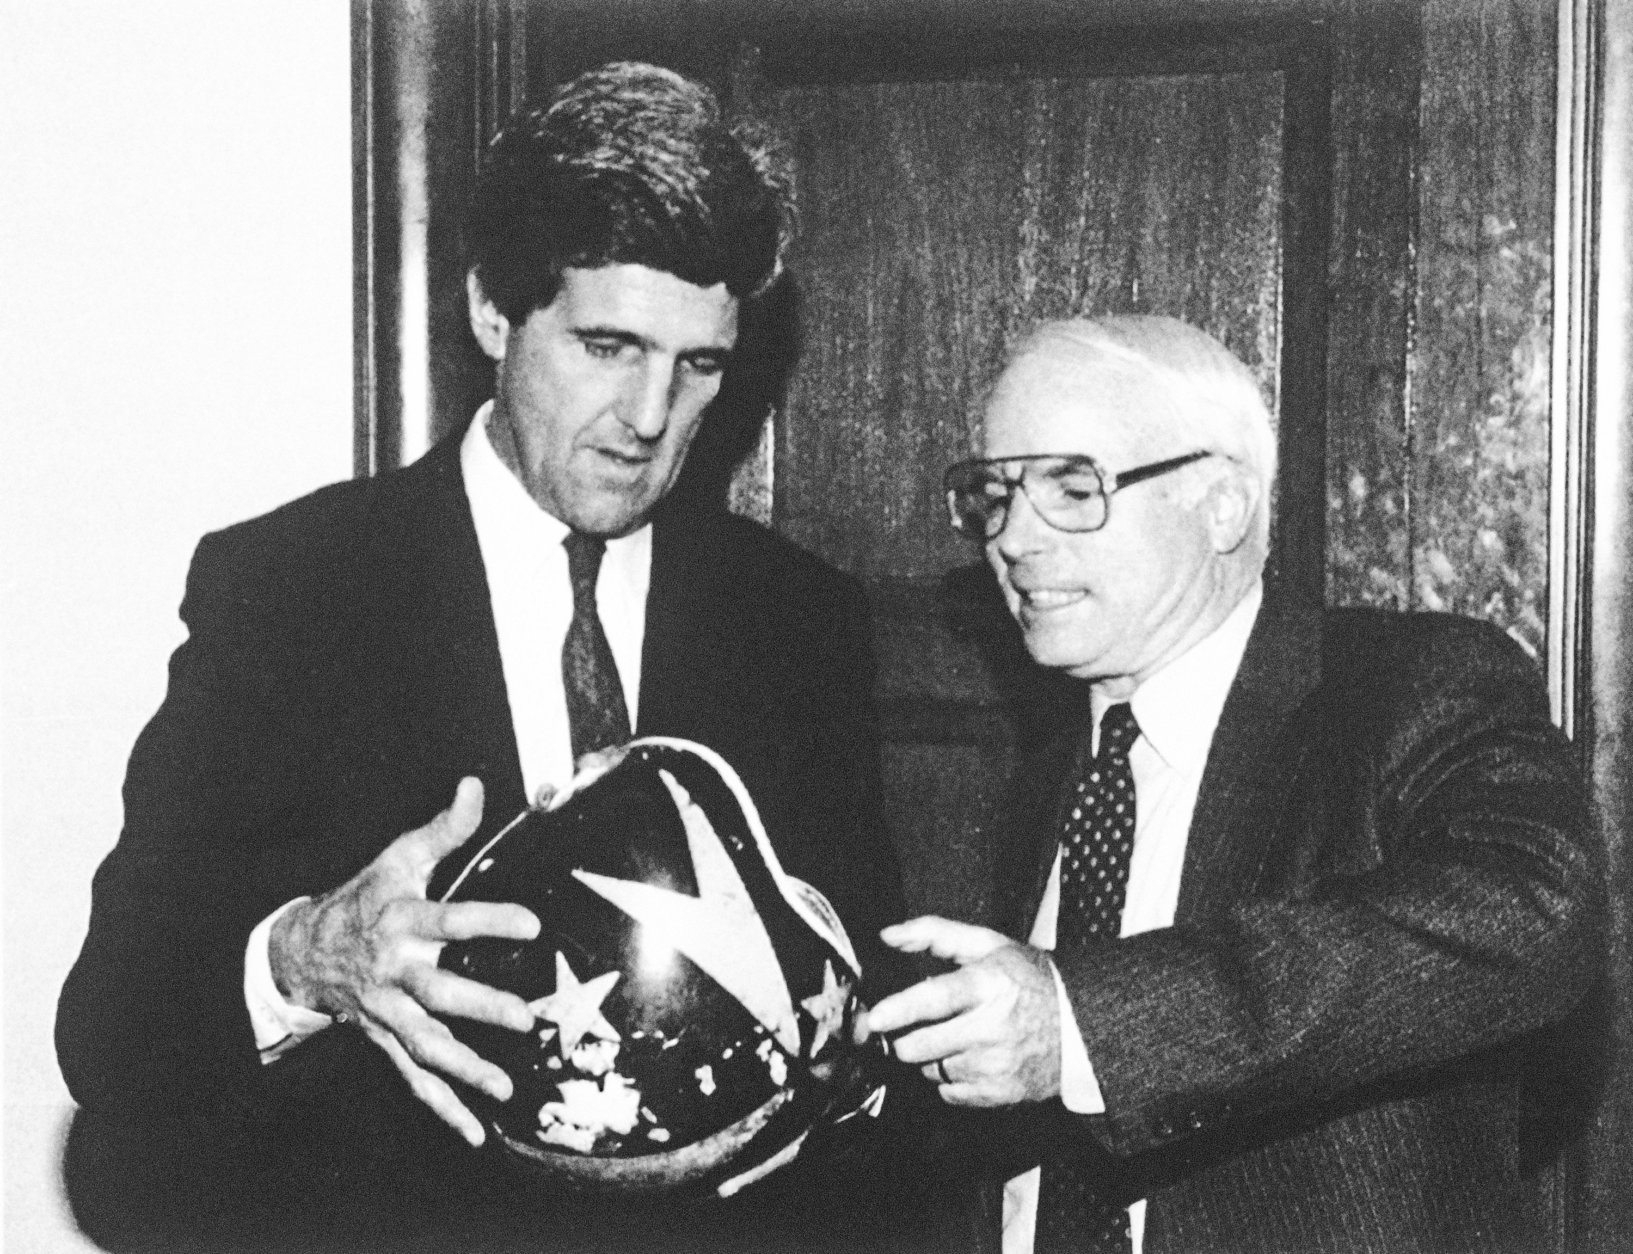 Sen. John Kerry (D-Mass.), chairman of the Senate Select Committee on POW-MIA Affairs, left, gives Sen. John McCain (R-Ariz.), a member of the committee, his pilot's helmet on Capitol Hill in Washington, Dec. 2, 1992. Kerry gave the helmet to McCain after retrieving it from the Vietnamese on a recent trip to Hanoi to investigate the POW/MIA issue. McCain was held prisoner in Vietnam during the war. (AP Photo/U.S. Senate)